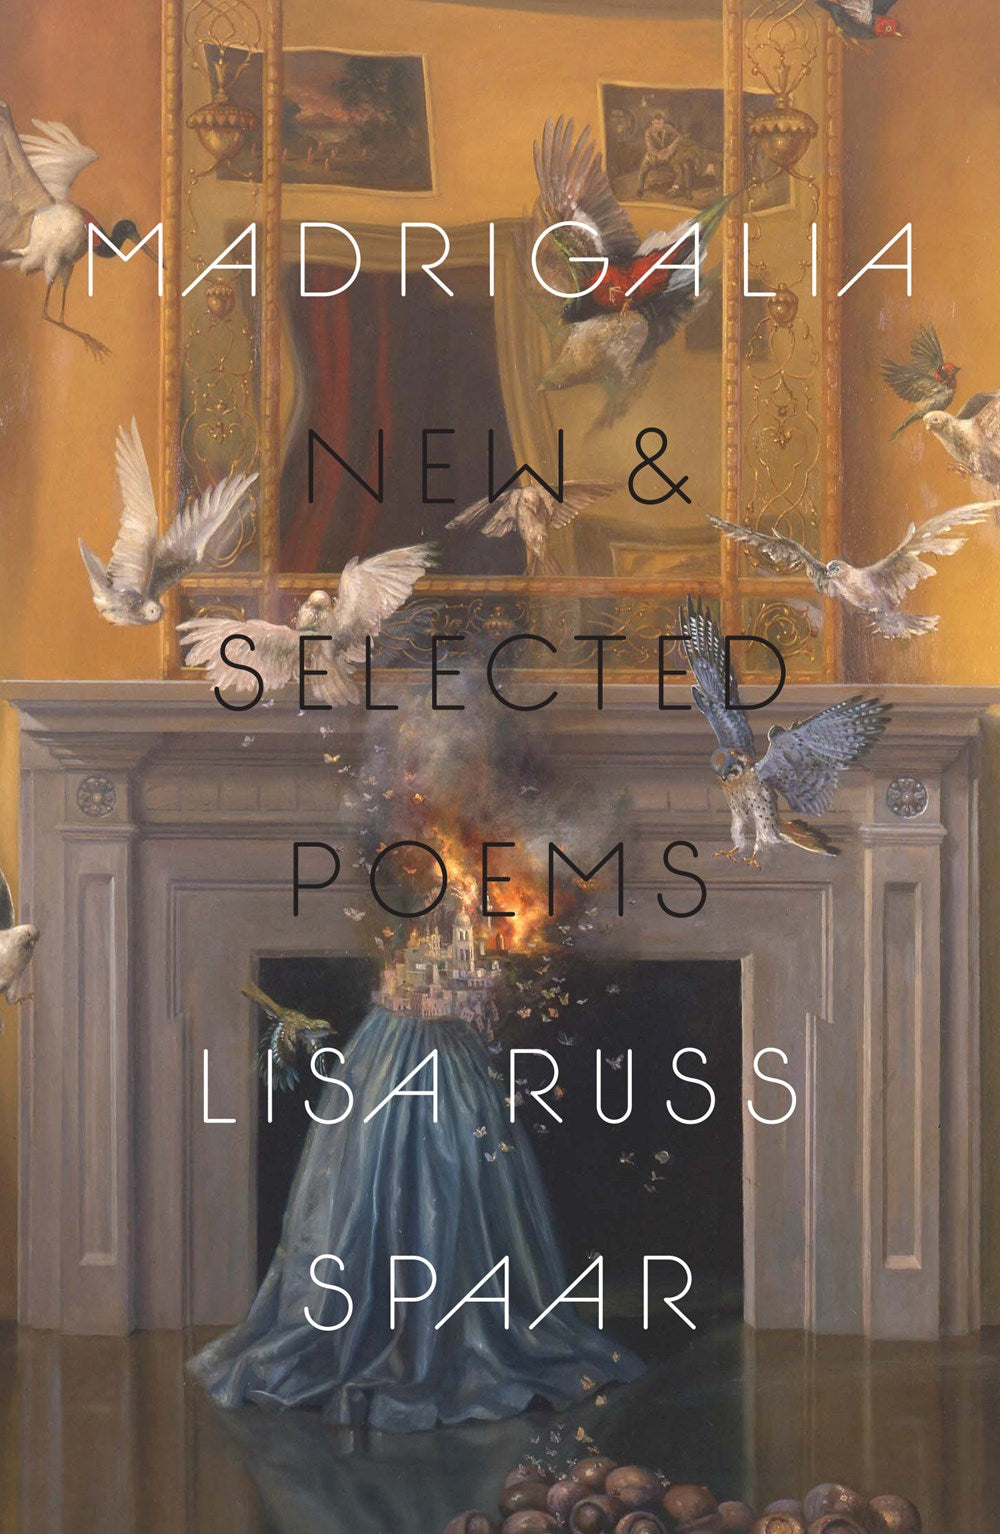 [11/16/2021] Madrigalia: New & Selected Poems by Lisa Russ Spaar